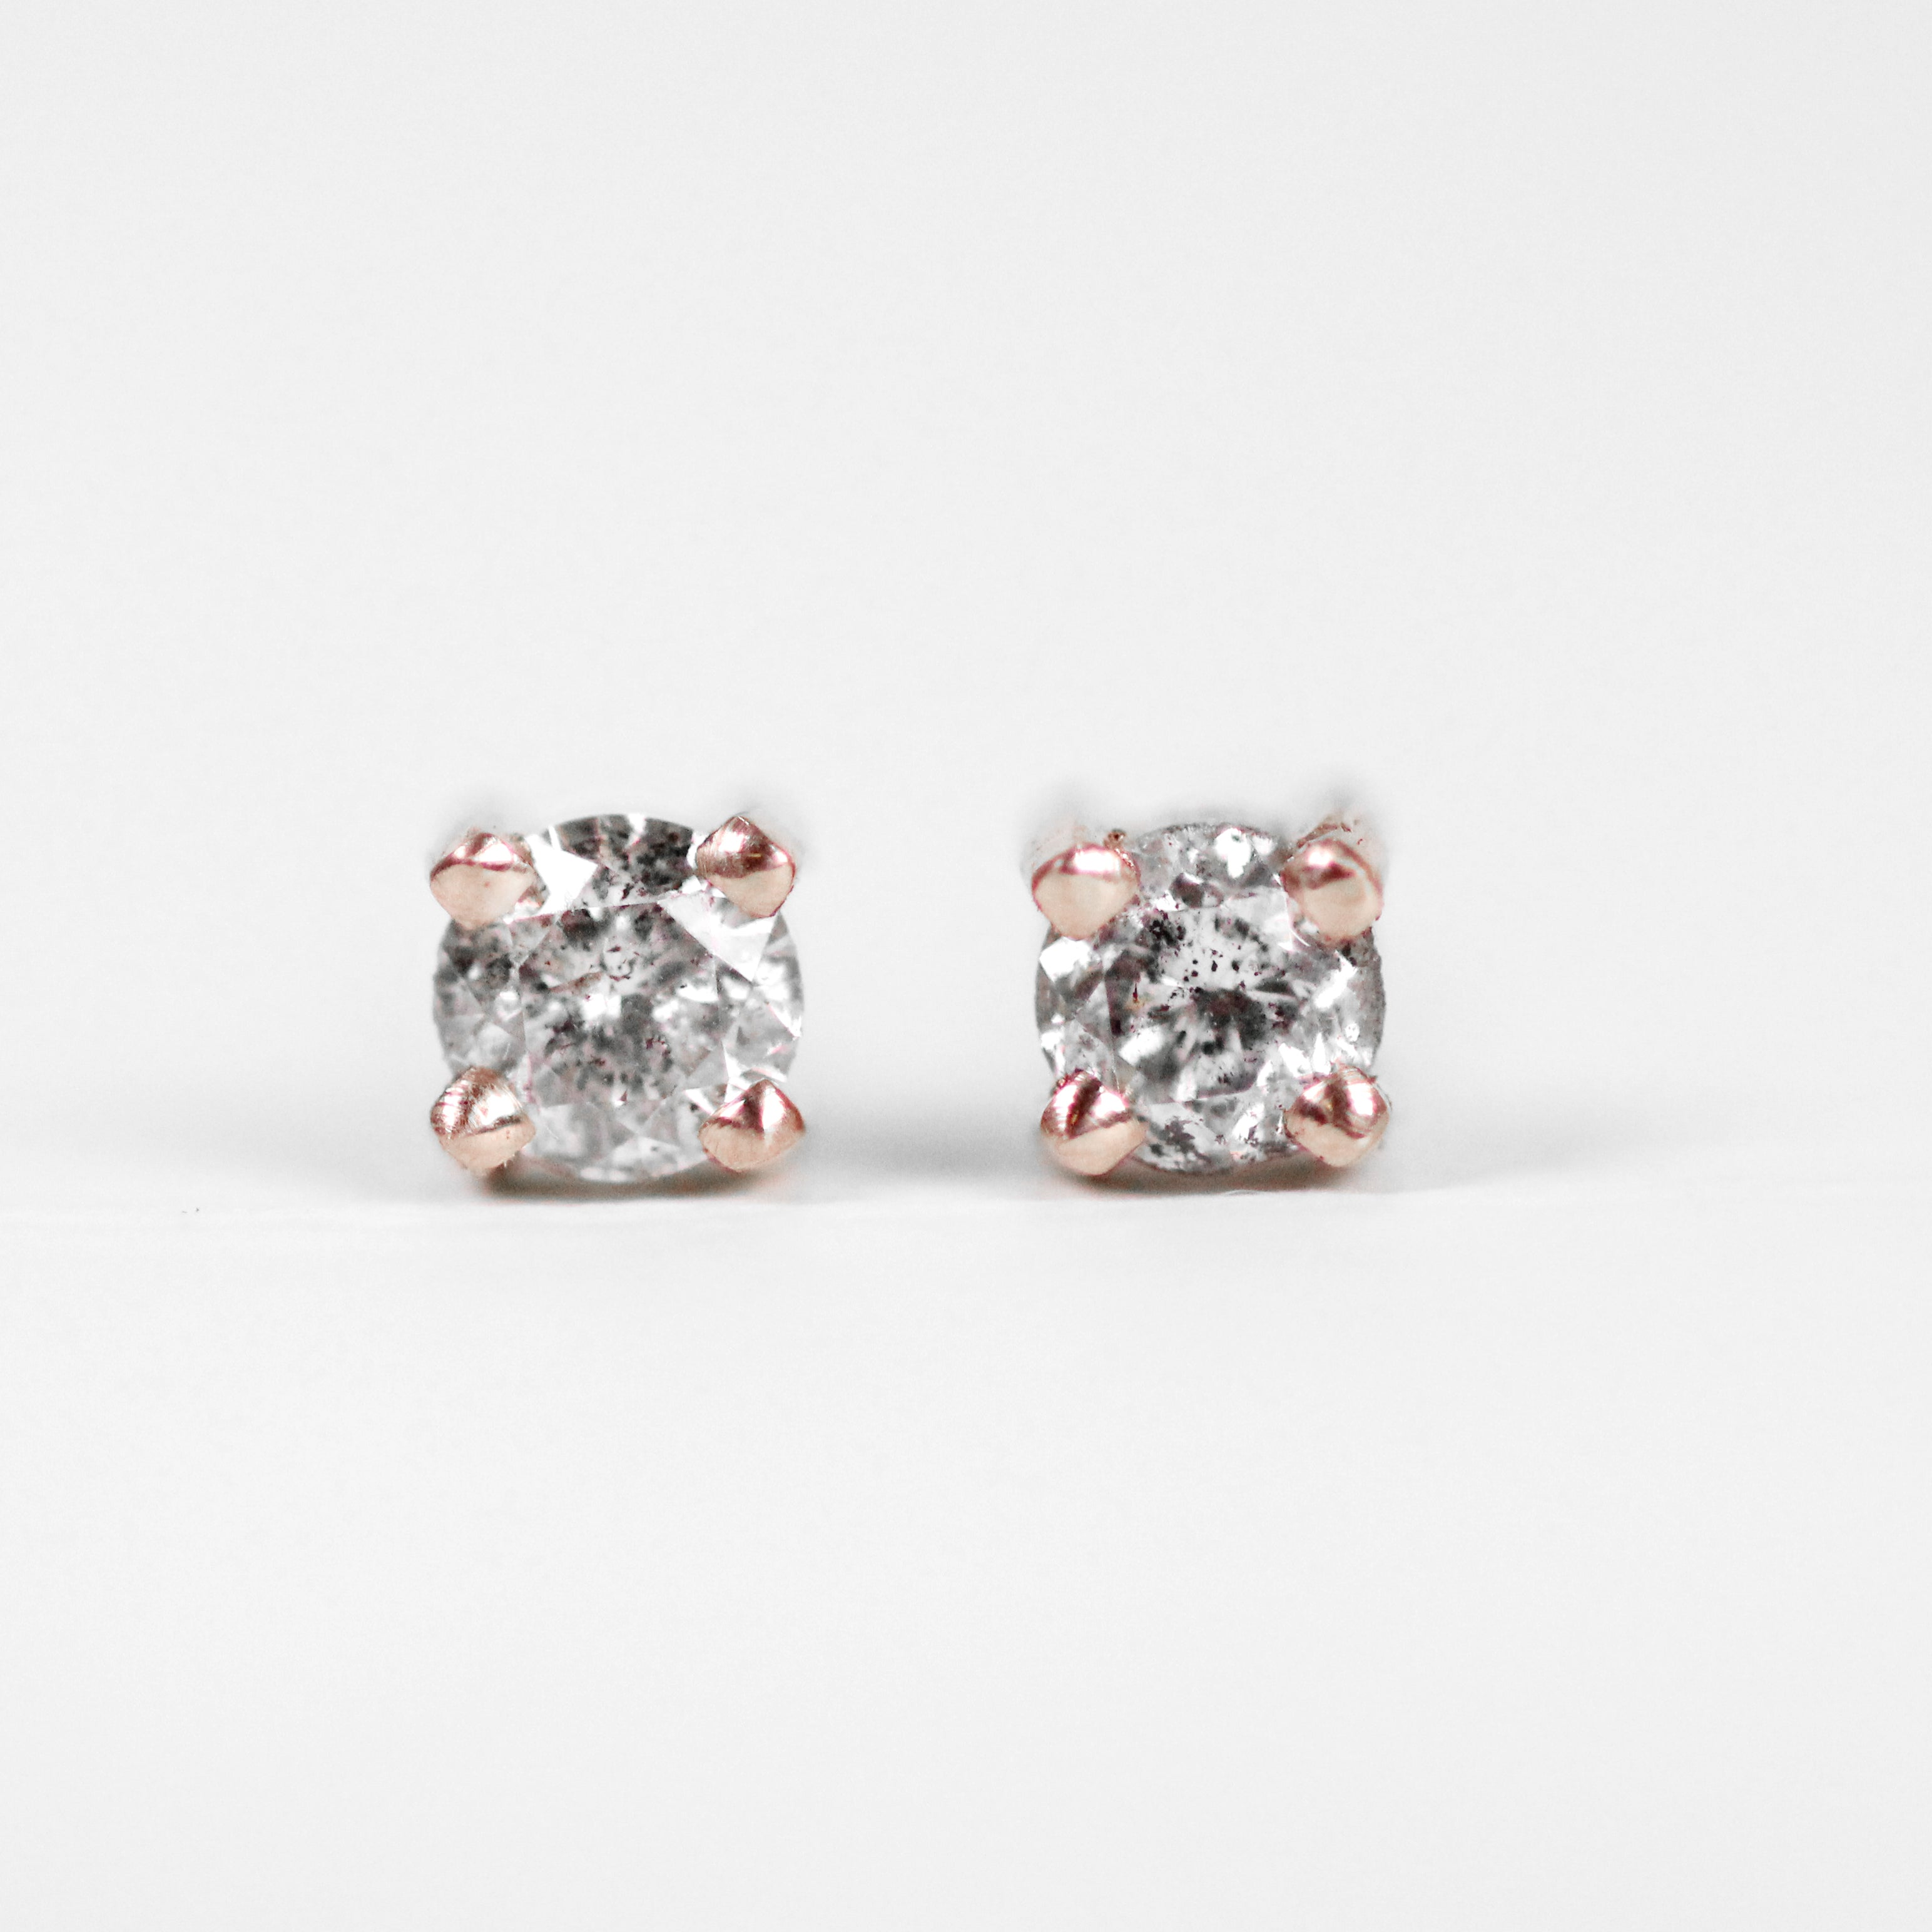 14k Gold Earring Studs with Gray Celestial Diamonds - Your Choice of Gold - Celestial Diamonds ® by Midwinter Co.